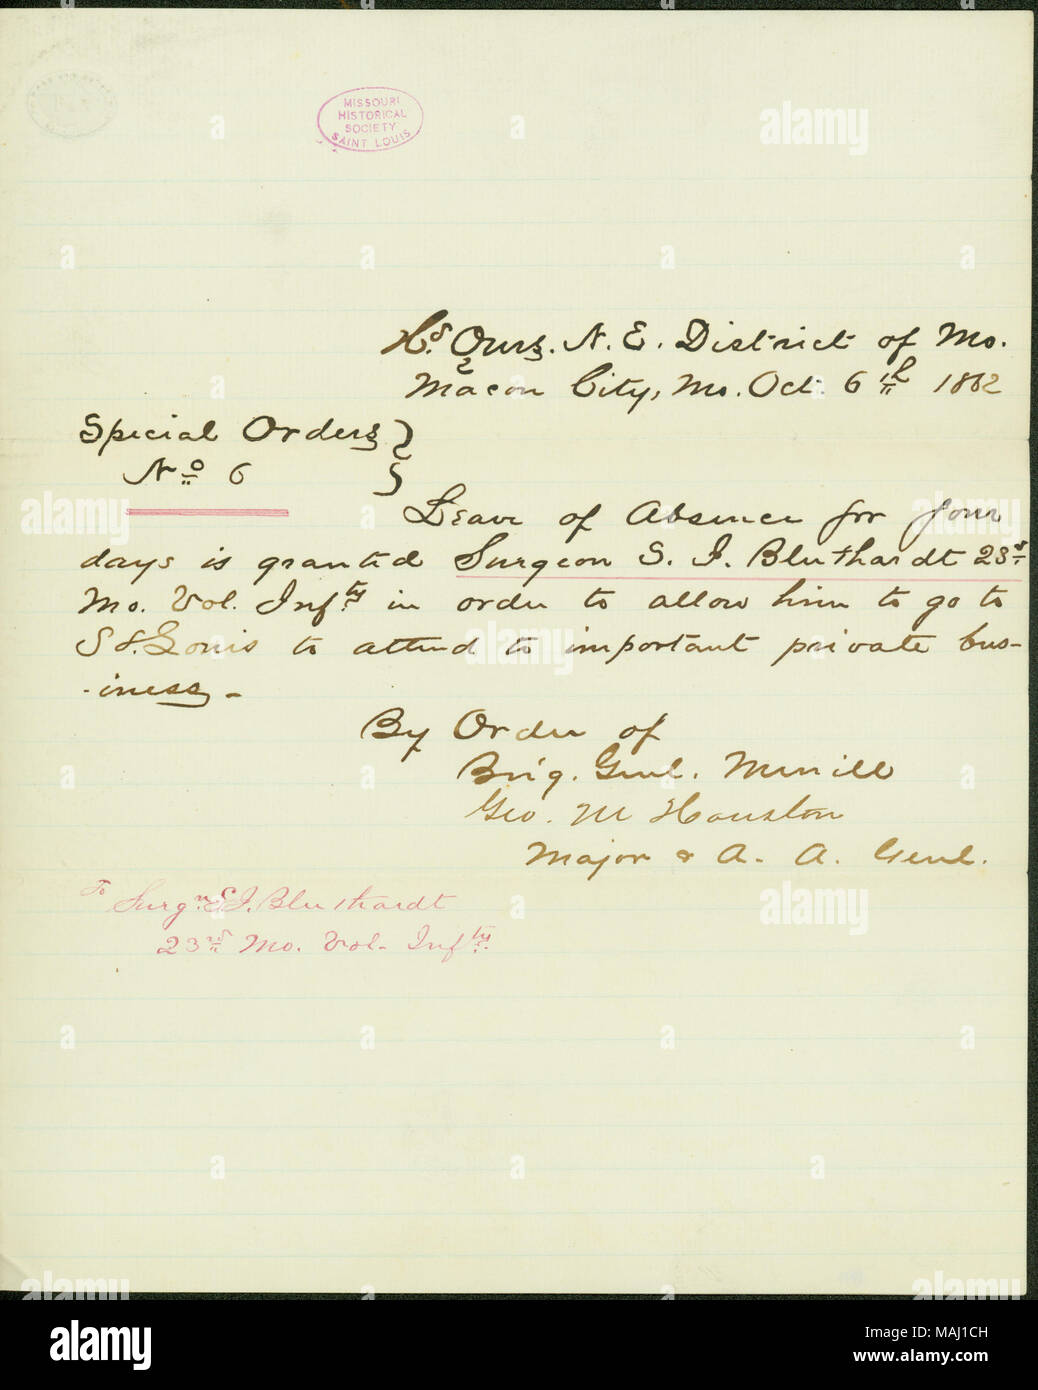 Grant theodore j bluthardt a leave of absence for four days to grant theodore j bluthardt a leave of absence for four days to attend to private business in st louis transcription hd qrs ne district of mo altavistaventures